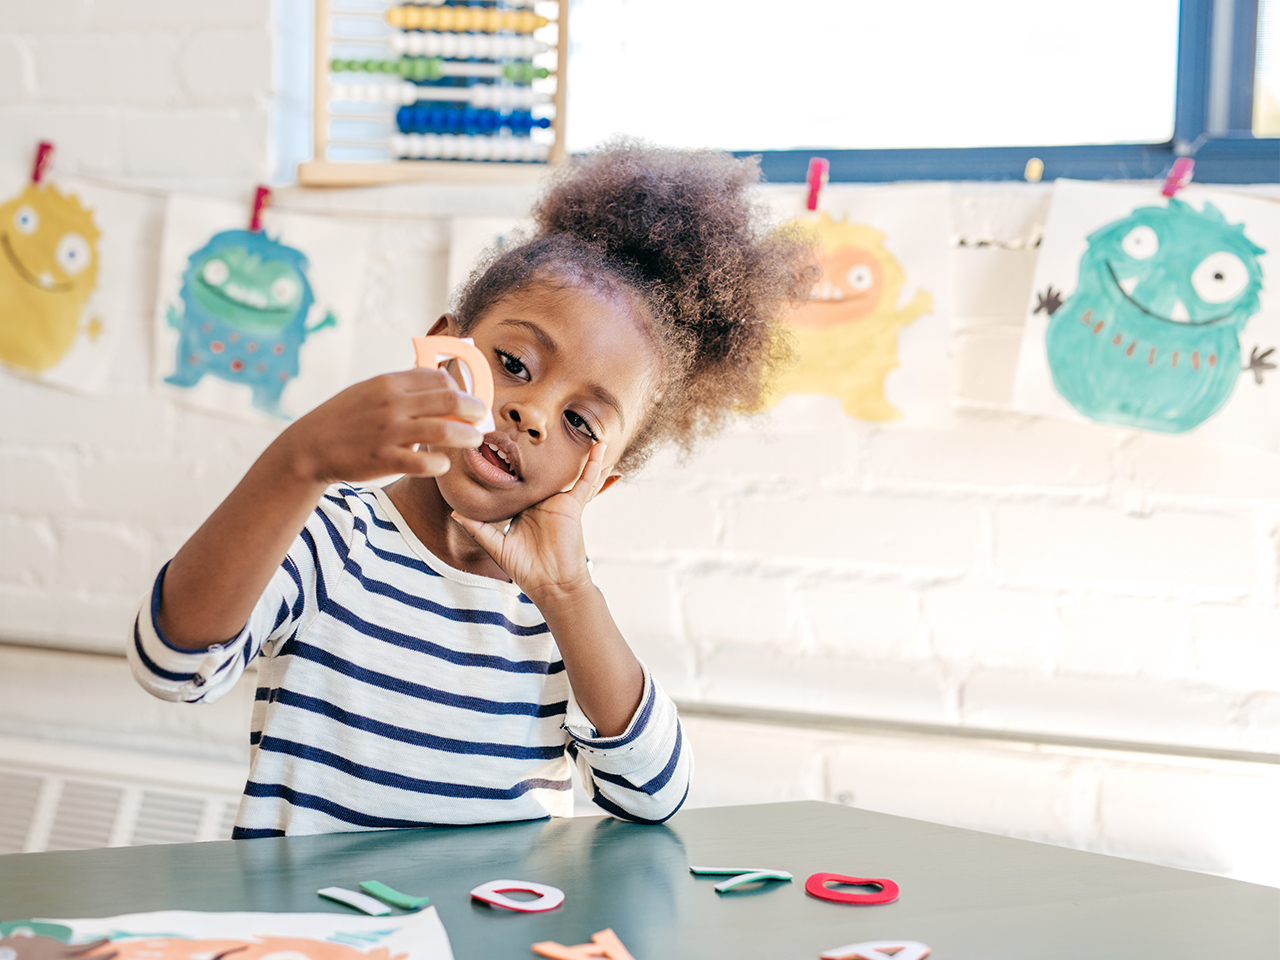 A little girl at preschool playing with letters at a table